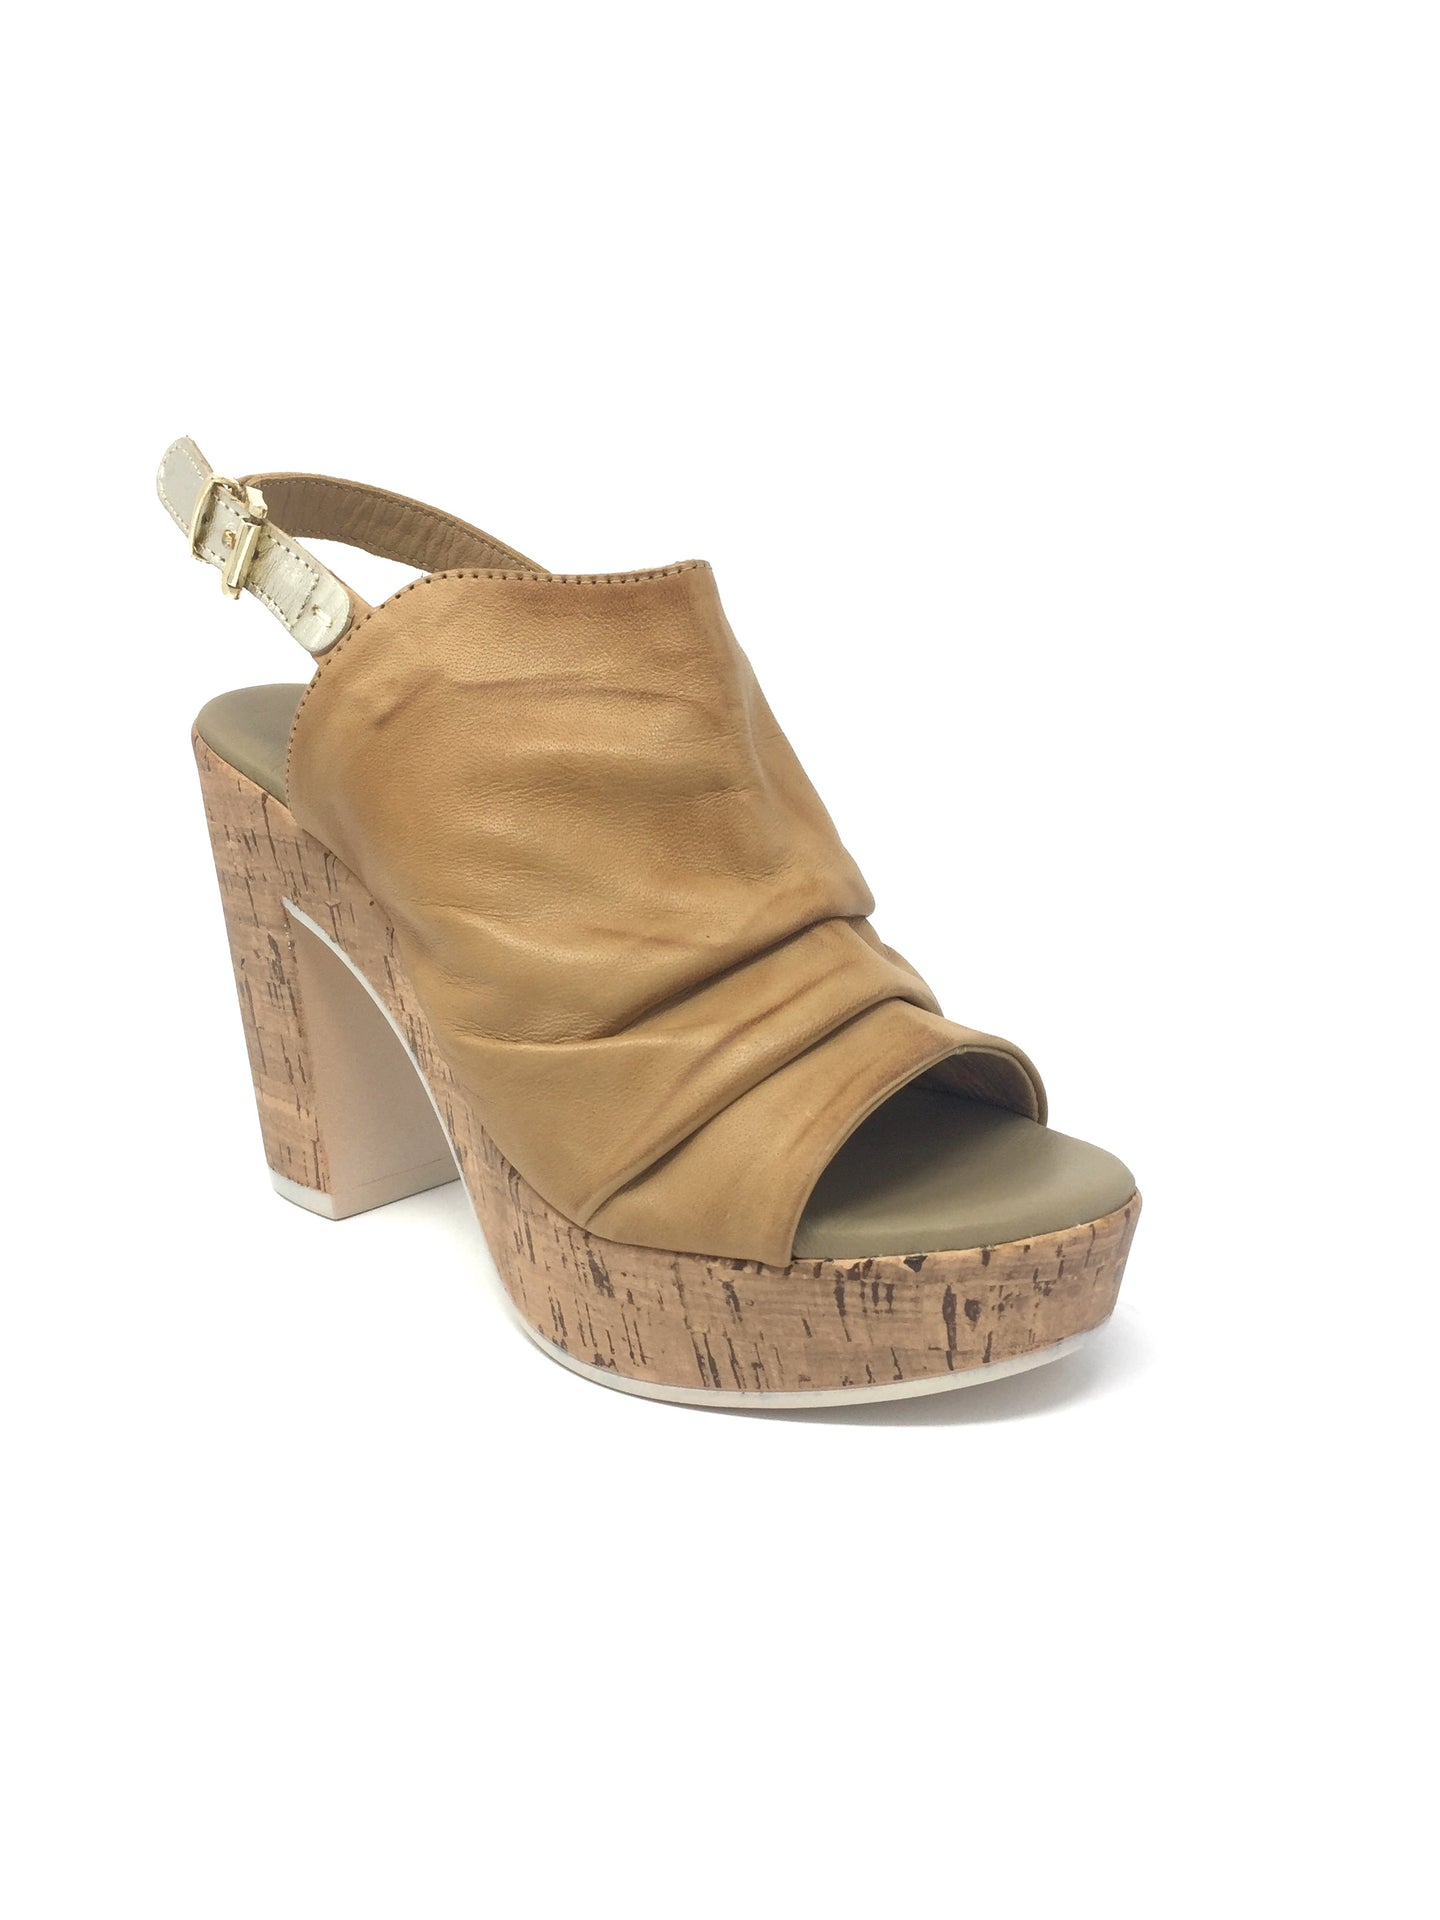 Beige Wedge Sandal with Fold Design Upper